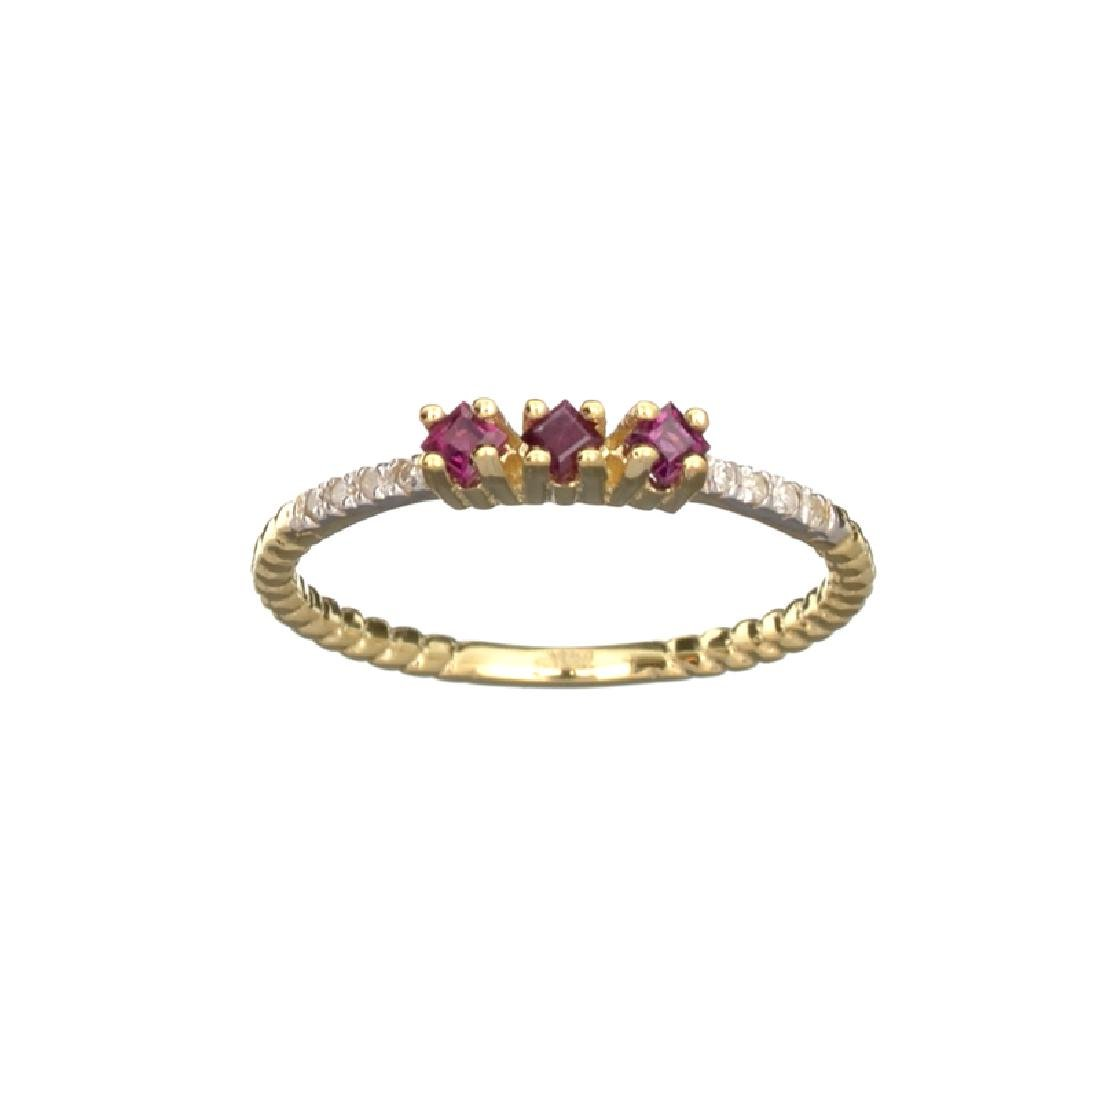 APP: 0.6k Fine Jewelry 14 KT Gold, 0.24CT Ruby And